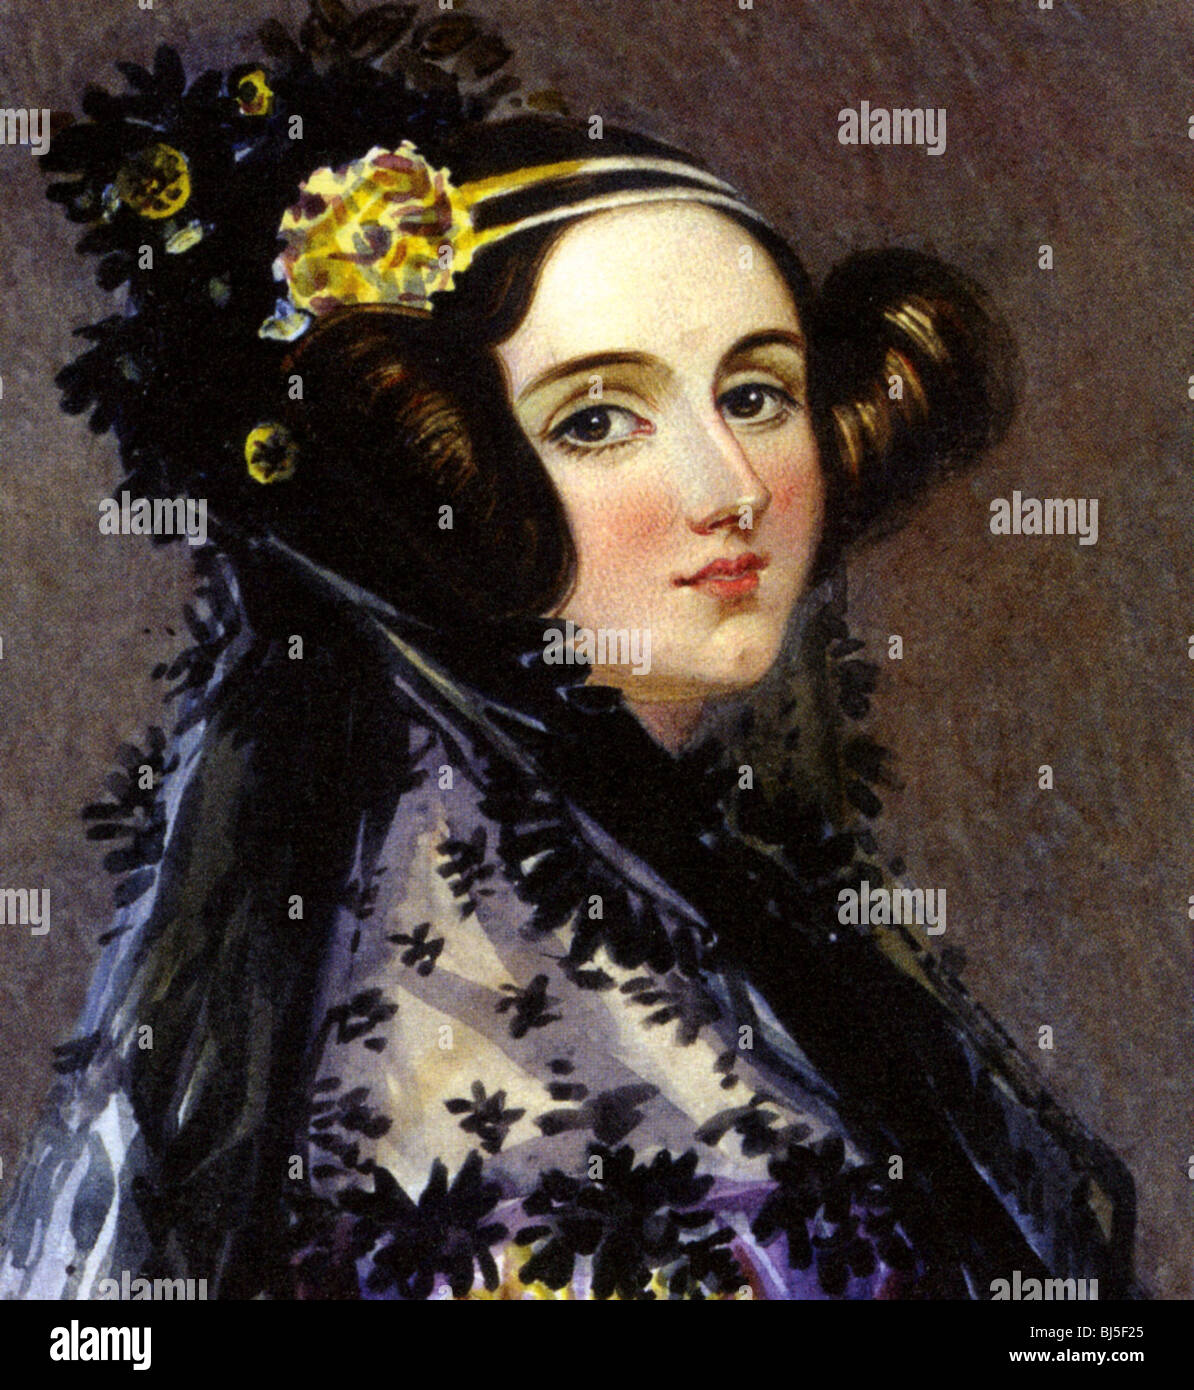 ADA  LOVELACE  - English writer and mathematician (1815-1852) daughter of Lord Byron and friend of Charles Babbage - Stock Image